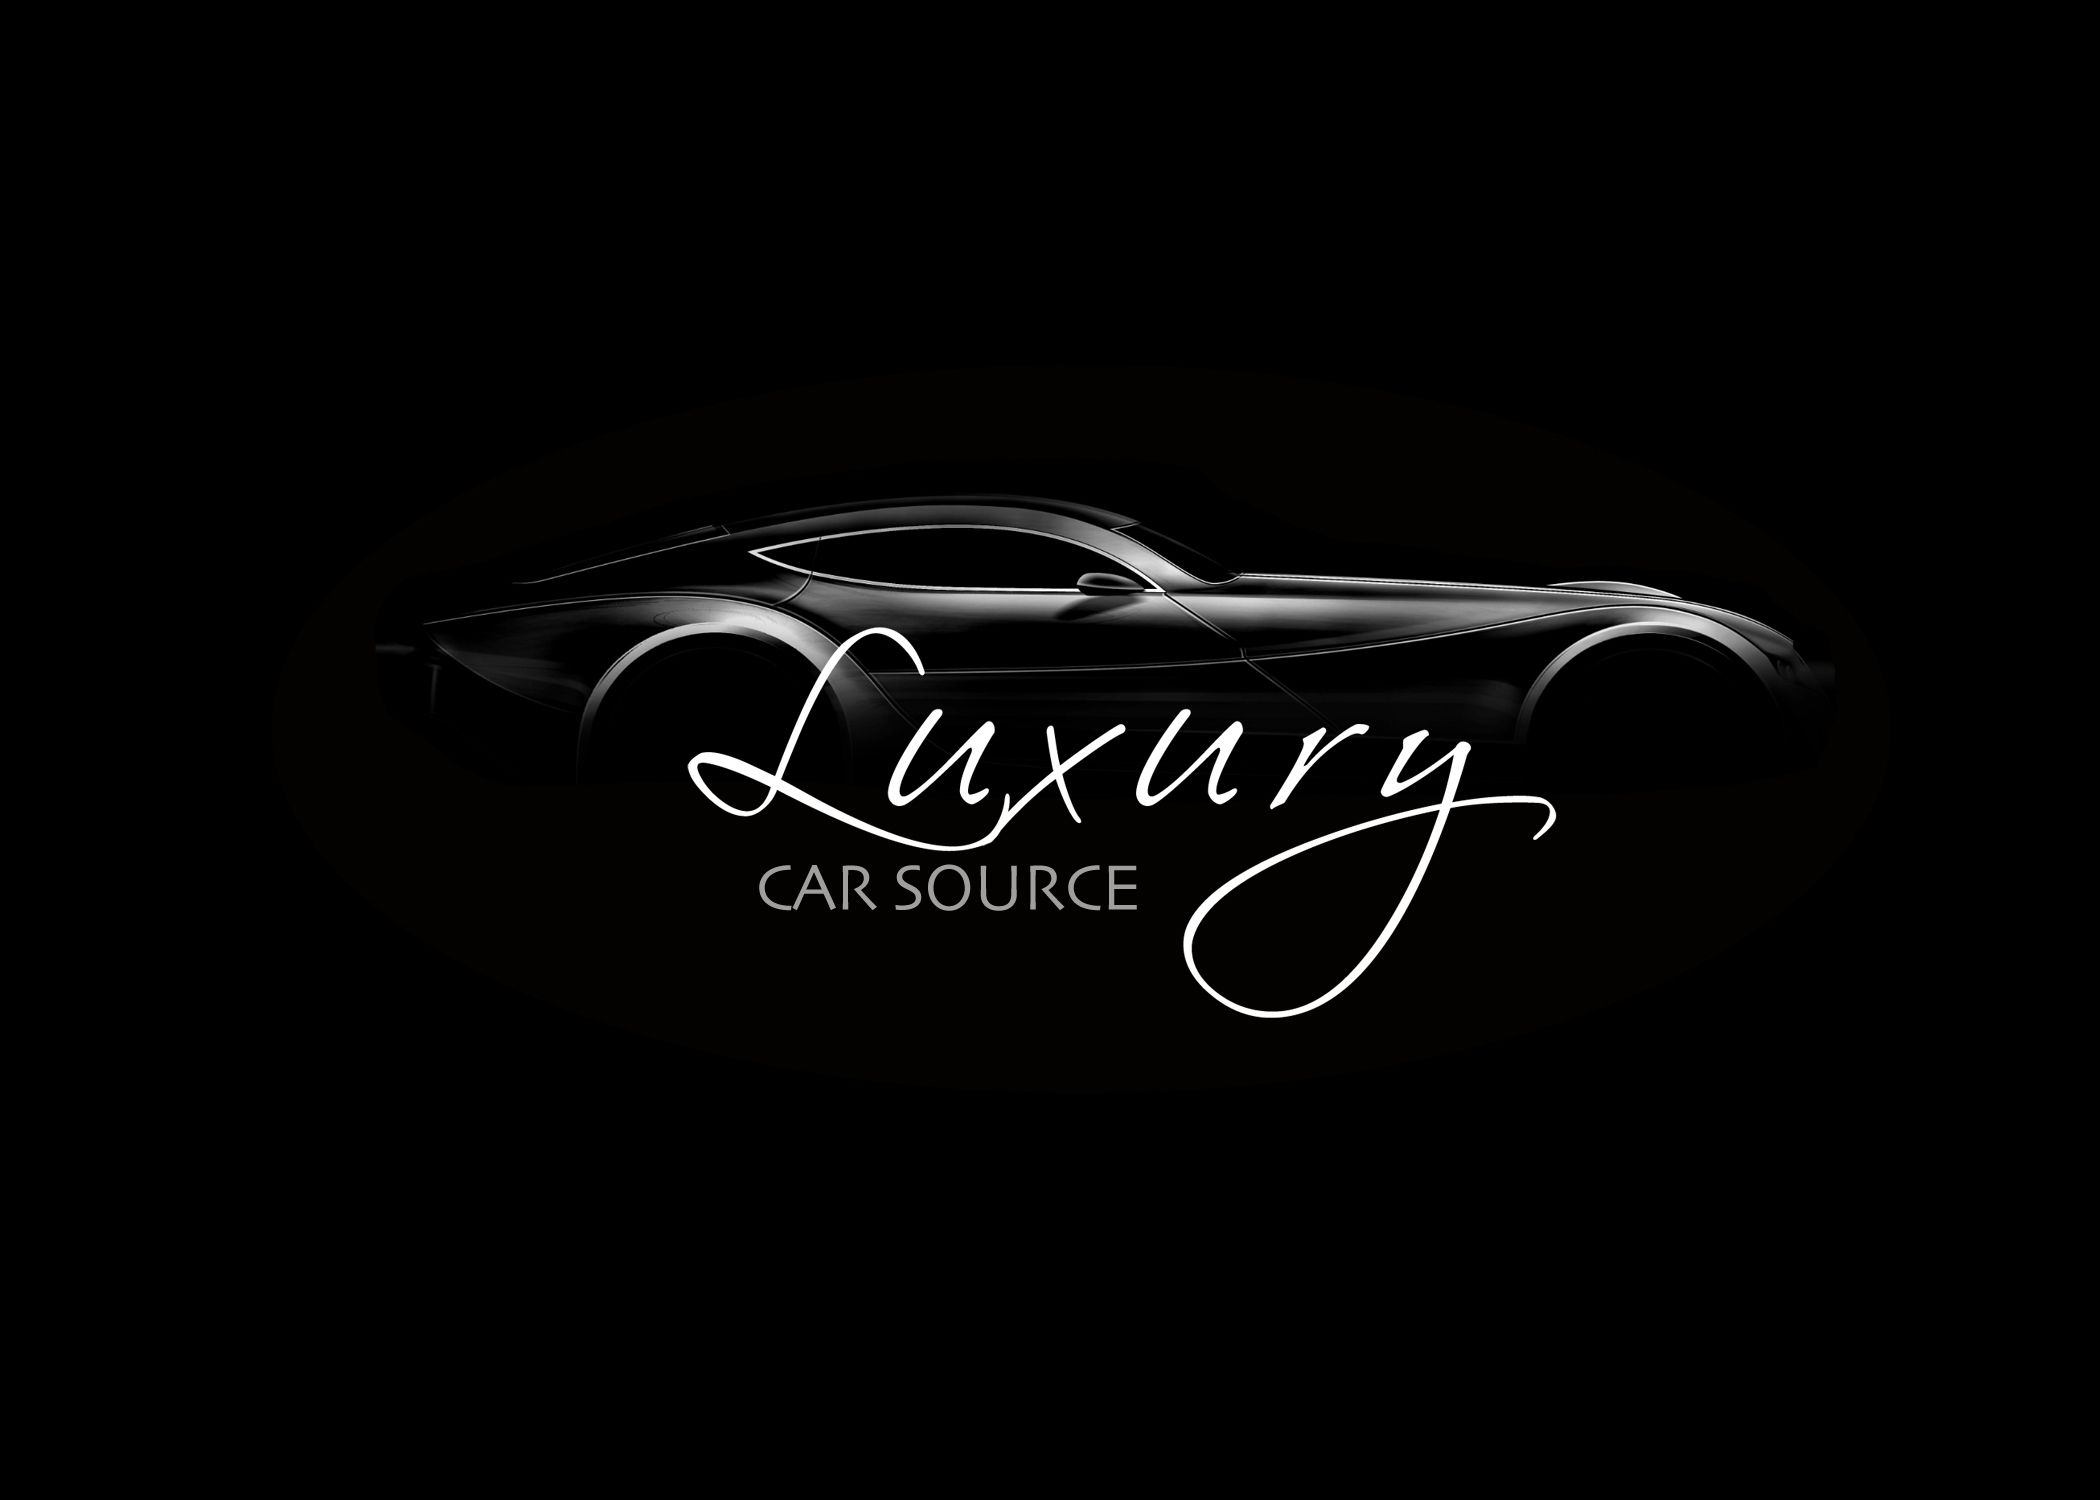 We Don T Drive Luxury Cars Luxury Cars Drive Us Luxury Car Source Luxury Cars Car Neon Signs